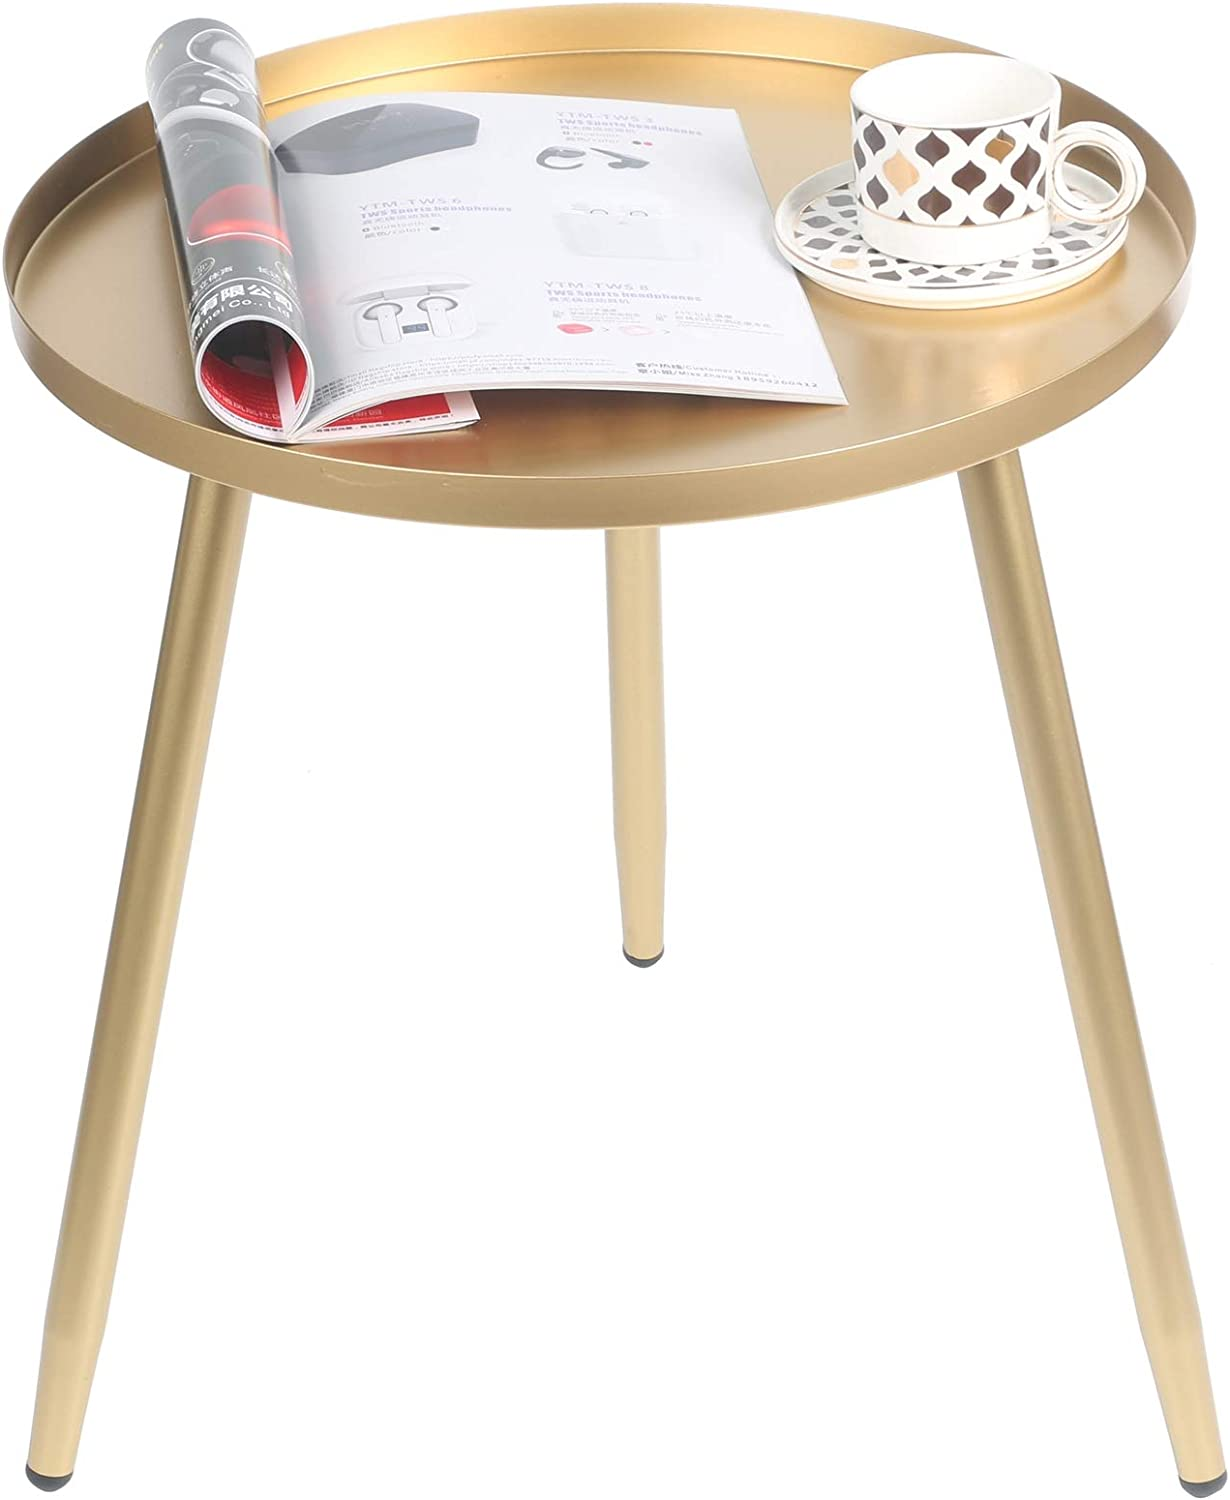 EXILOT Side Table, Round Metal Nightstand Modern Home Decor Coffee Tea End Table Accent Tables for Living Room Bedroom Office Small Spaces, 17.3